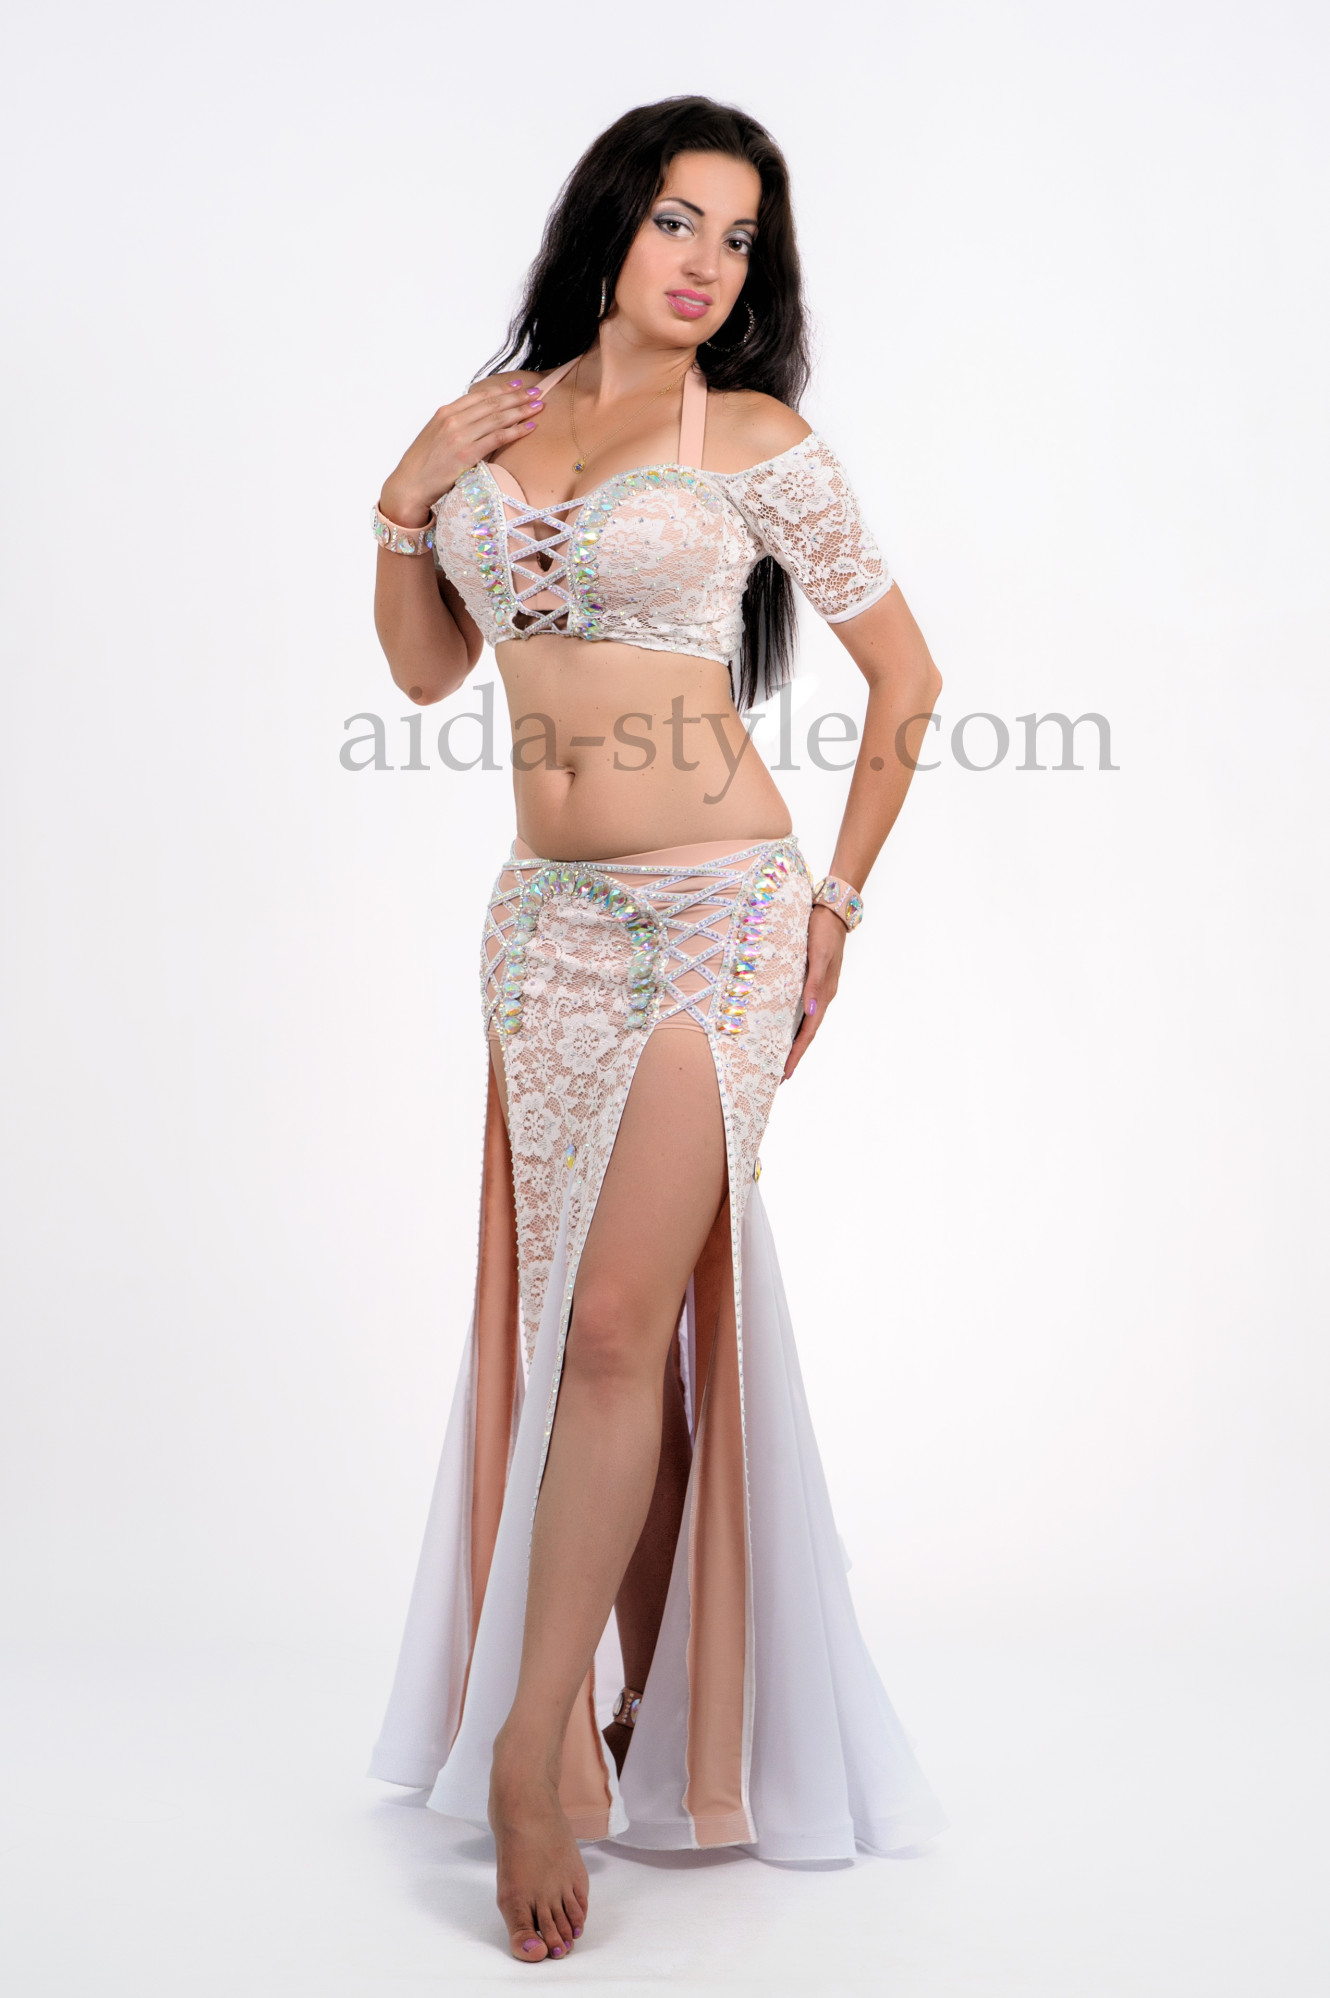 White professional belly dance costume, sewed with white fabric with beige underlayer